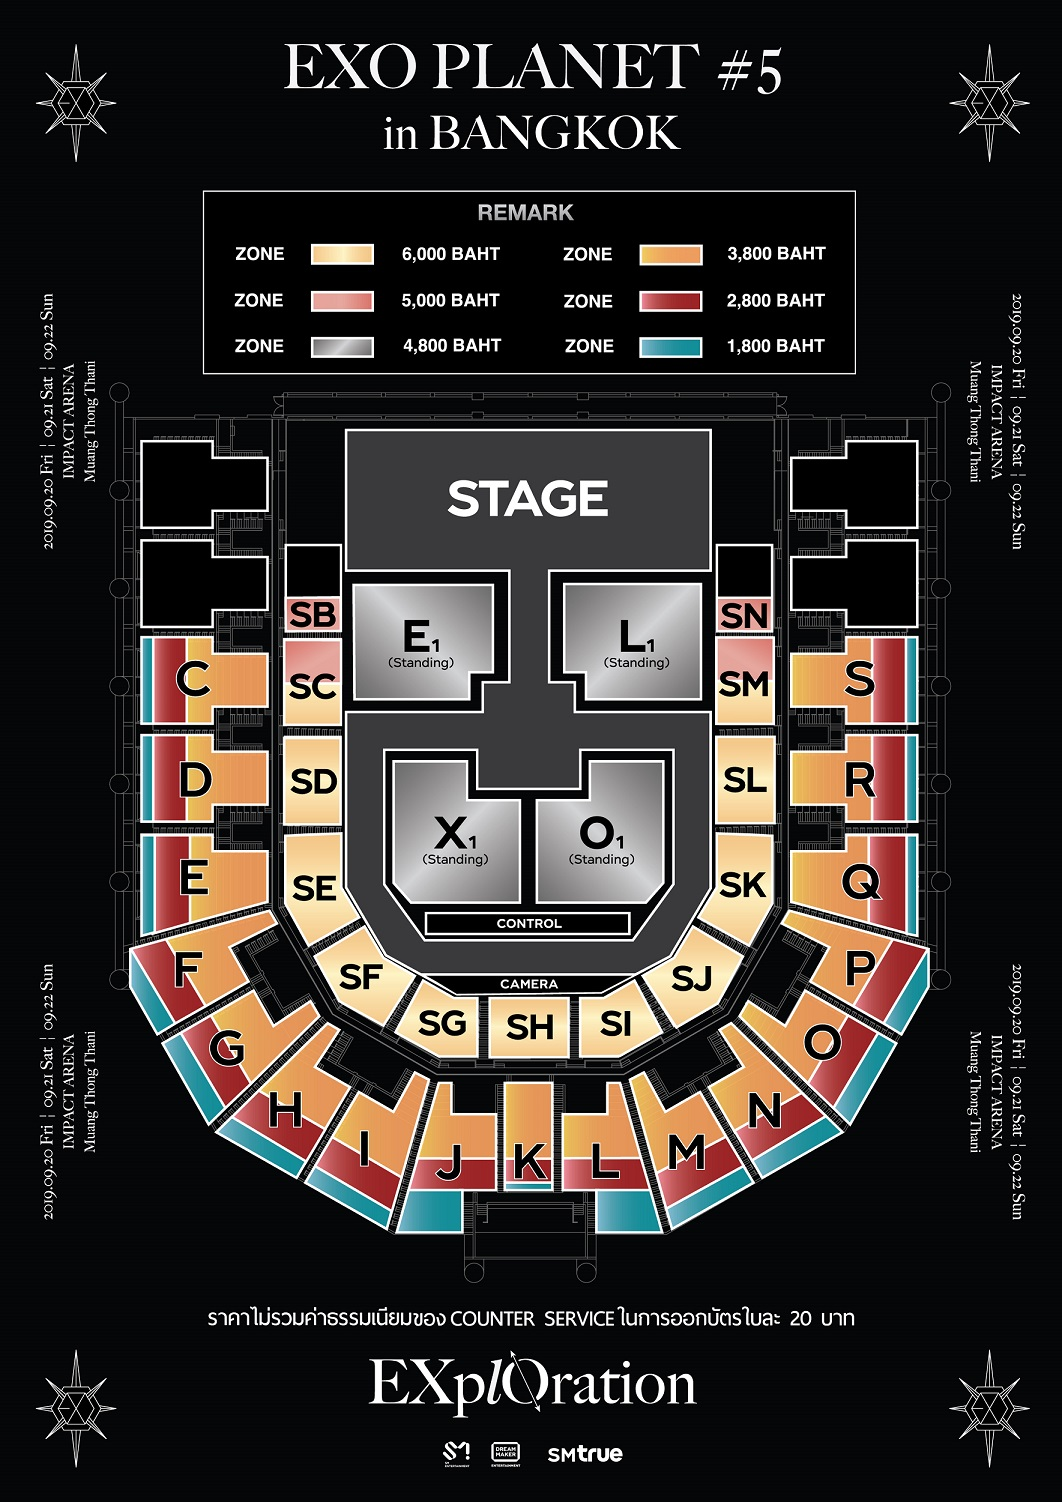 [SEAT PLAN] EXO PLANET #5 - EXplOration - in BANGKOK